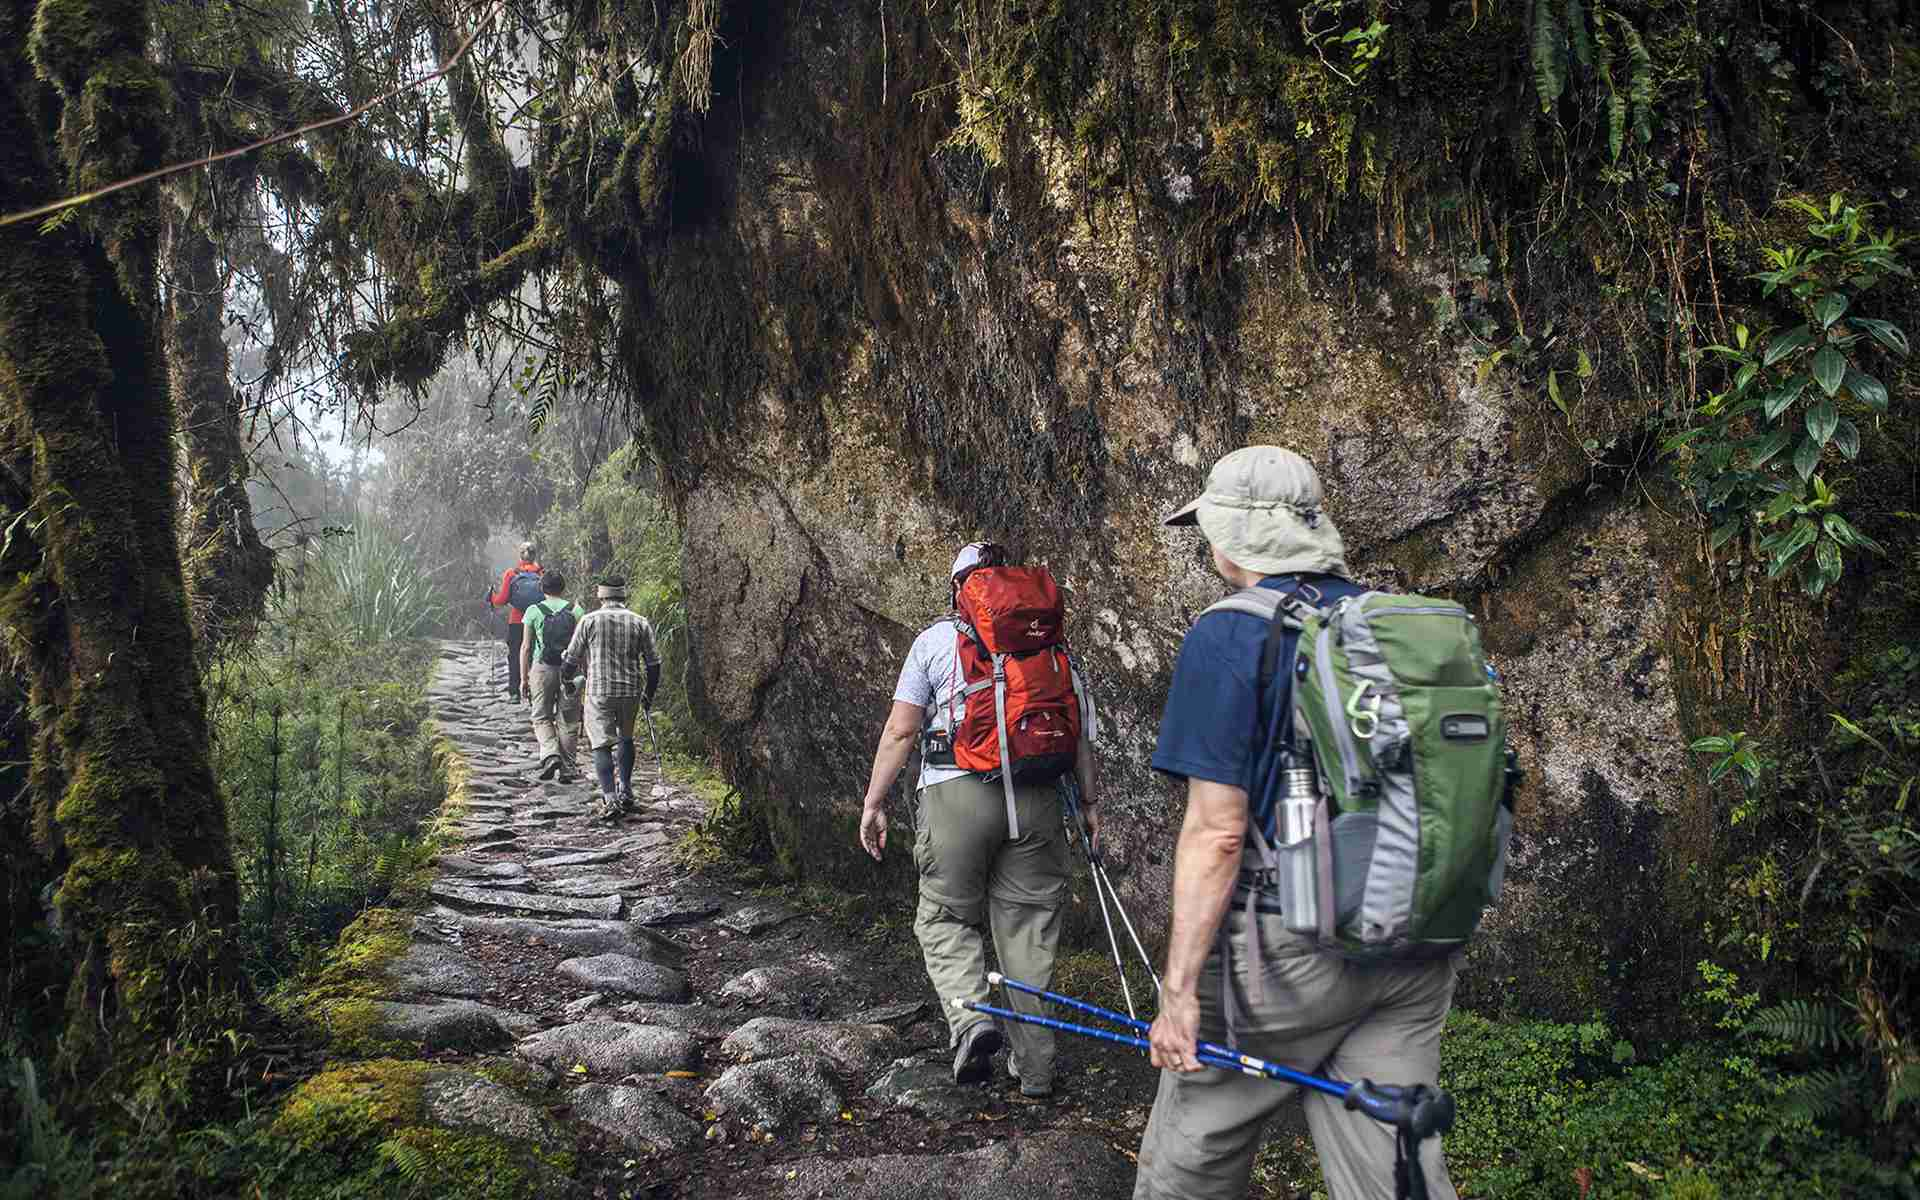 Imperial Inca Trail 5 days to Machupicchu - Inca Trail Salkantay Trek